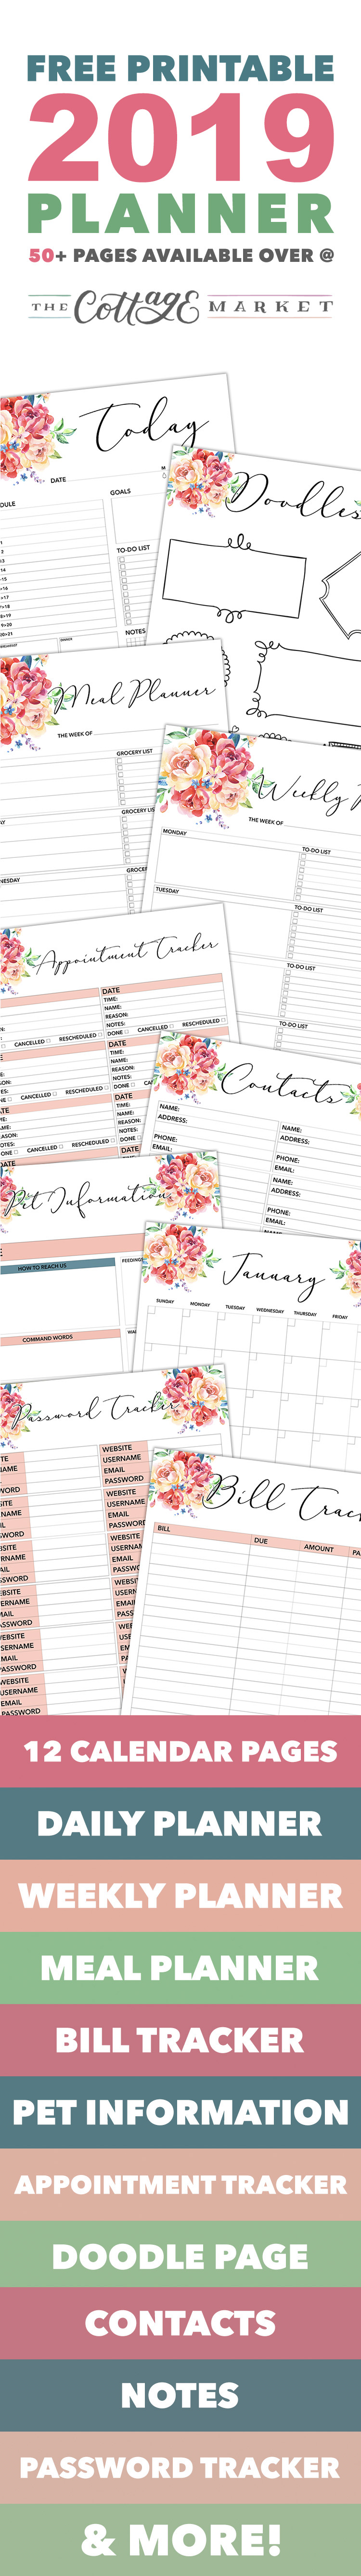 https://thecottagemarket.com/wp-content/uploads/2018/08/TCM-Floral-2019-Planner-Tower-1.jpg